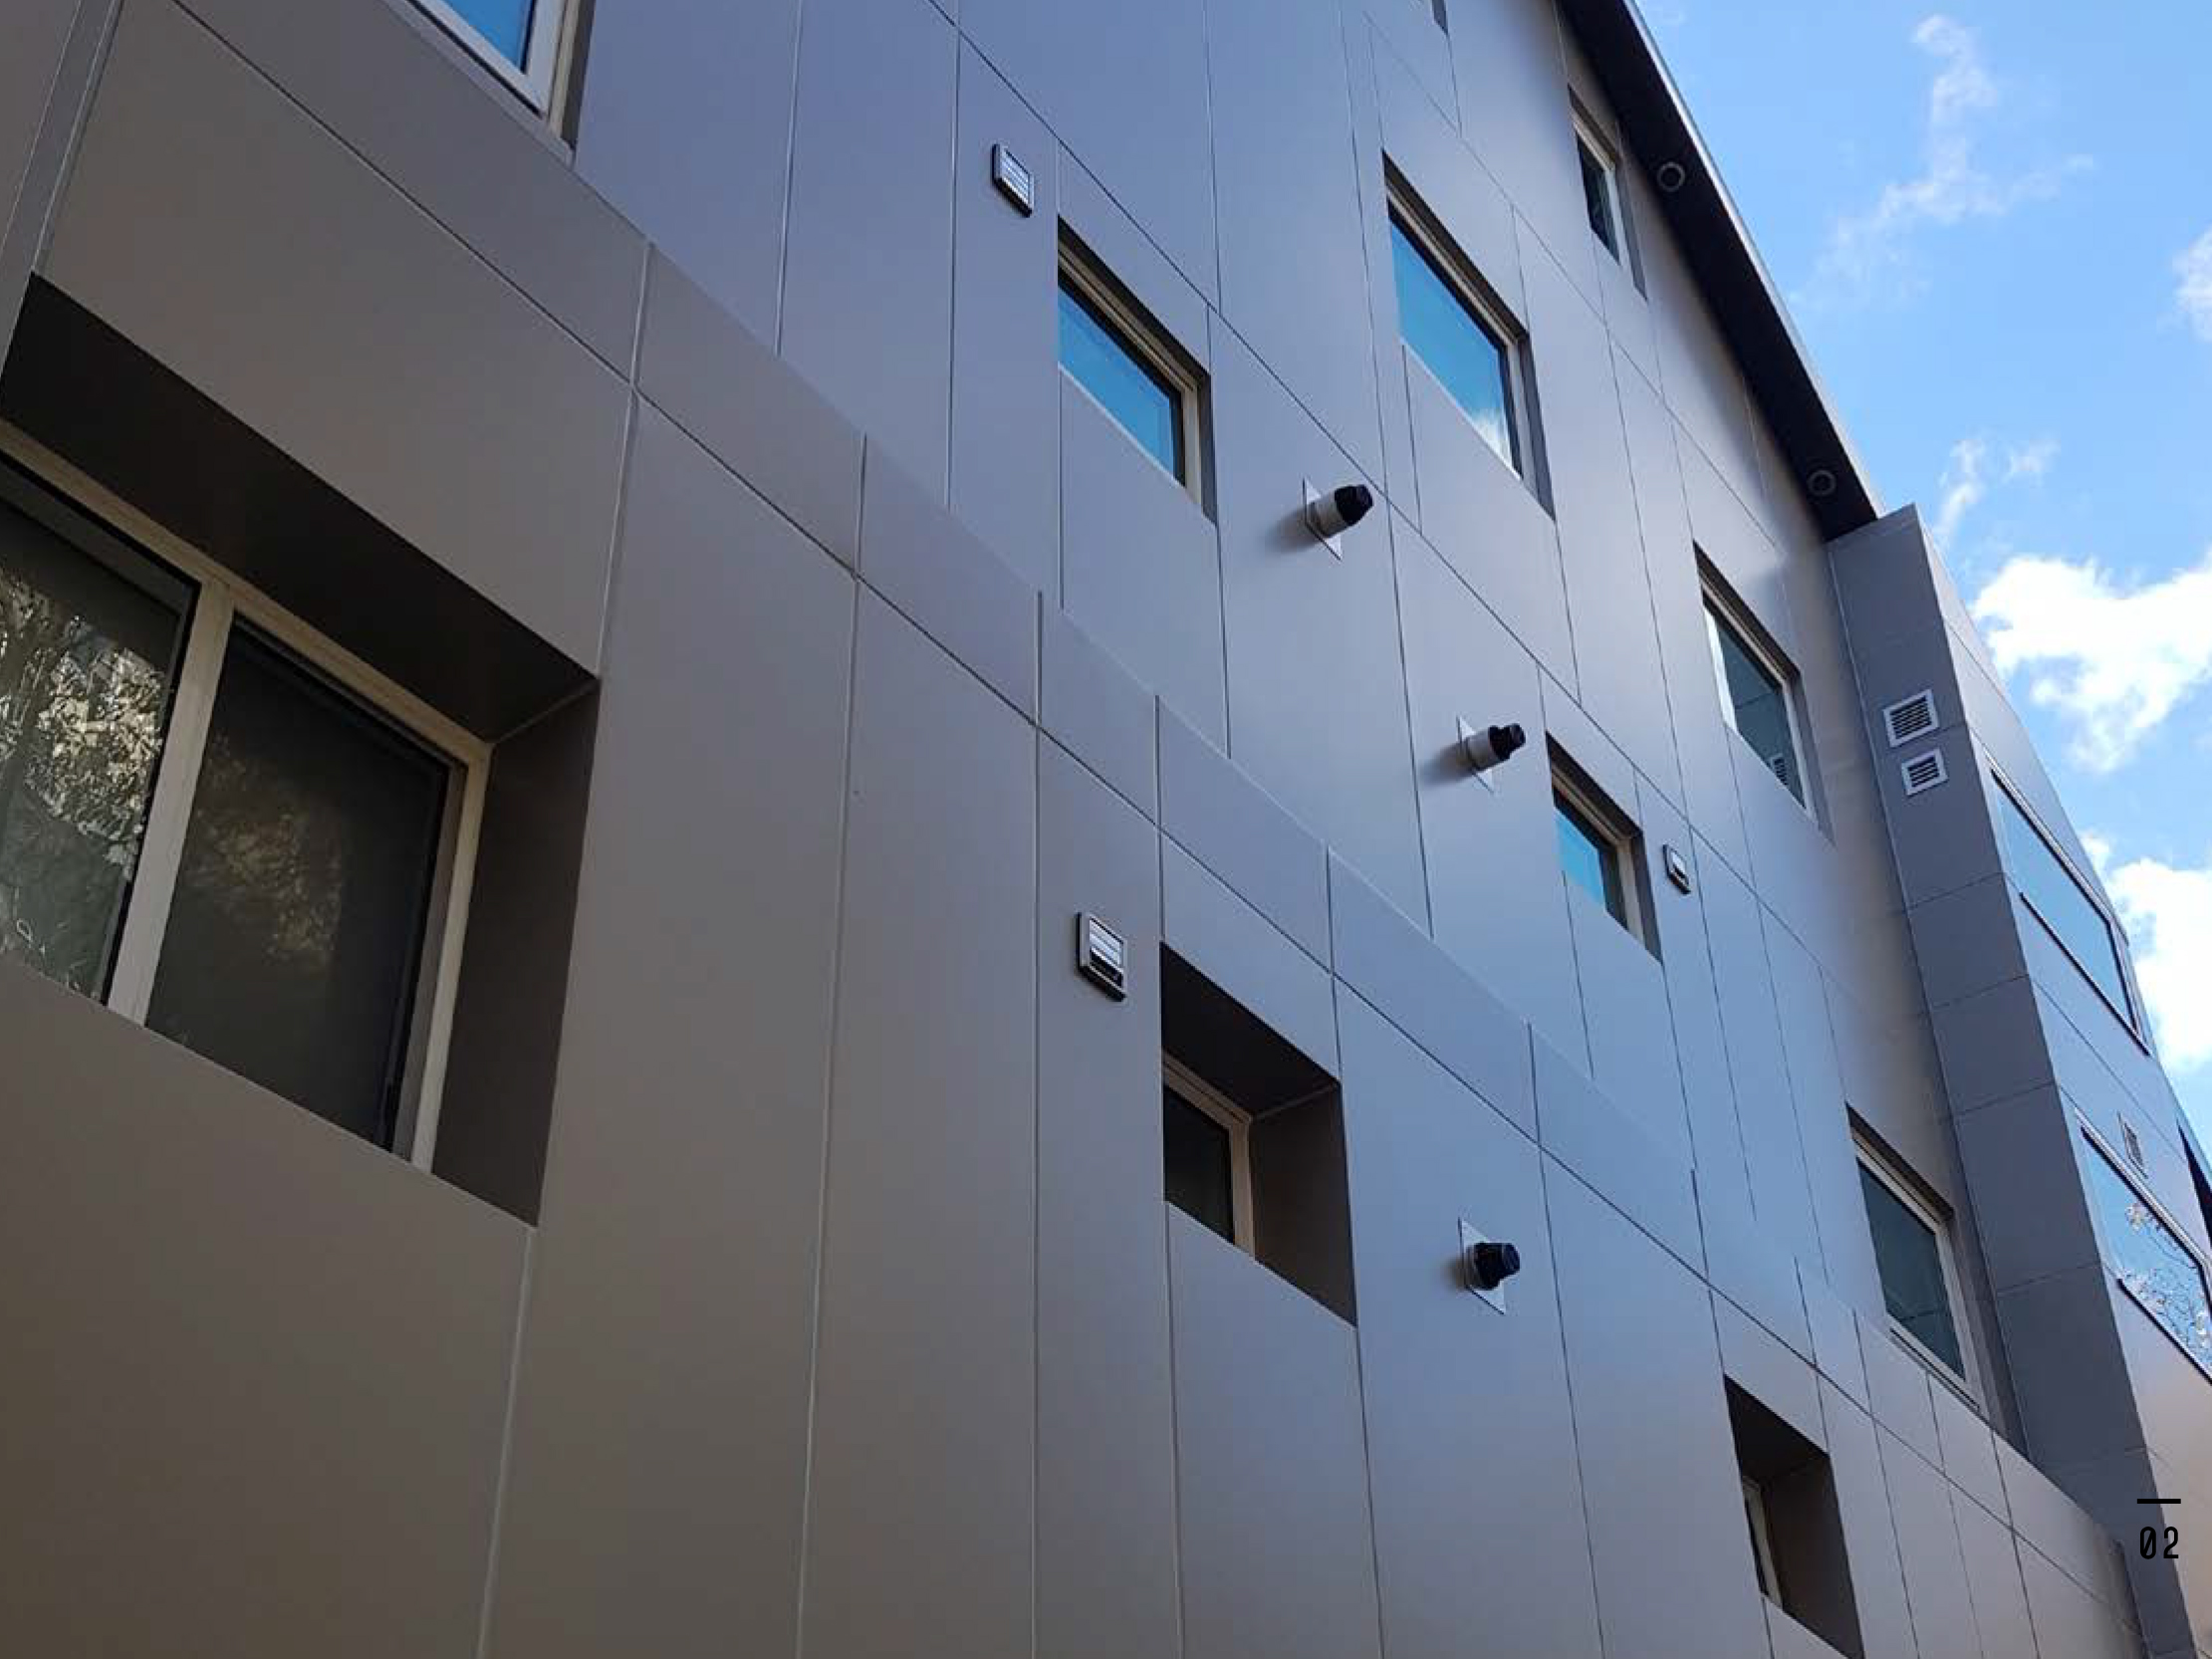 Vitrashield: Australia's first fully compliant AS5113 cladding system